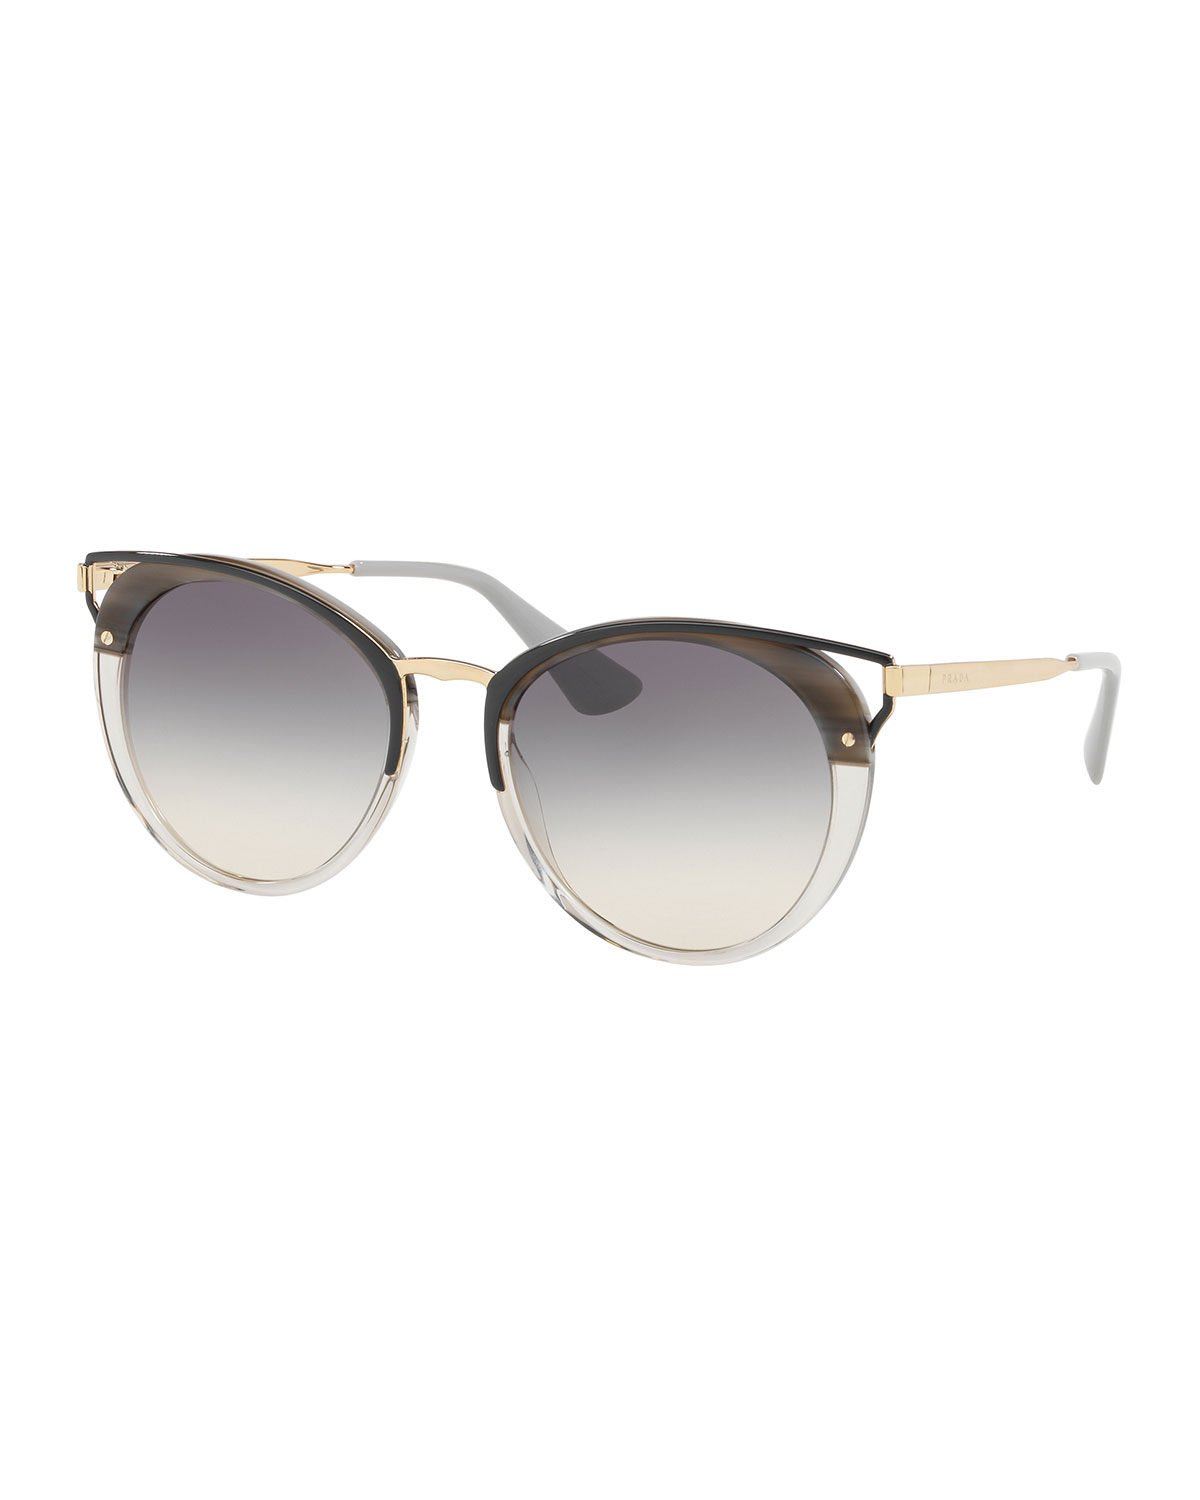 17e3c577014 Quick Look. Prada · Cutout Round Sunglasses